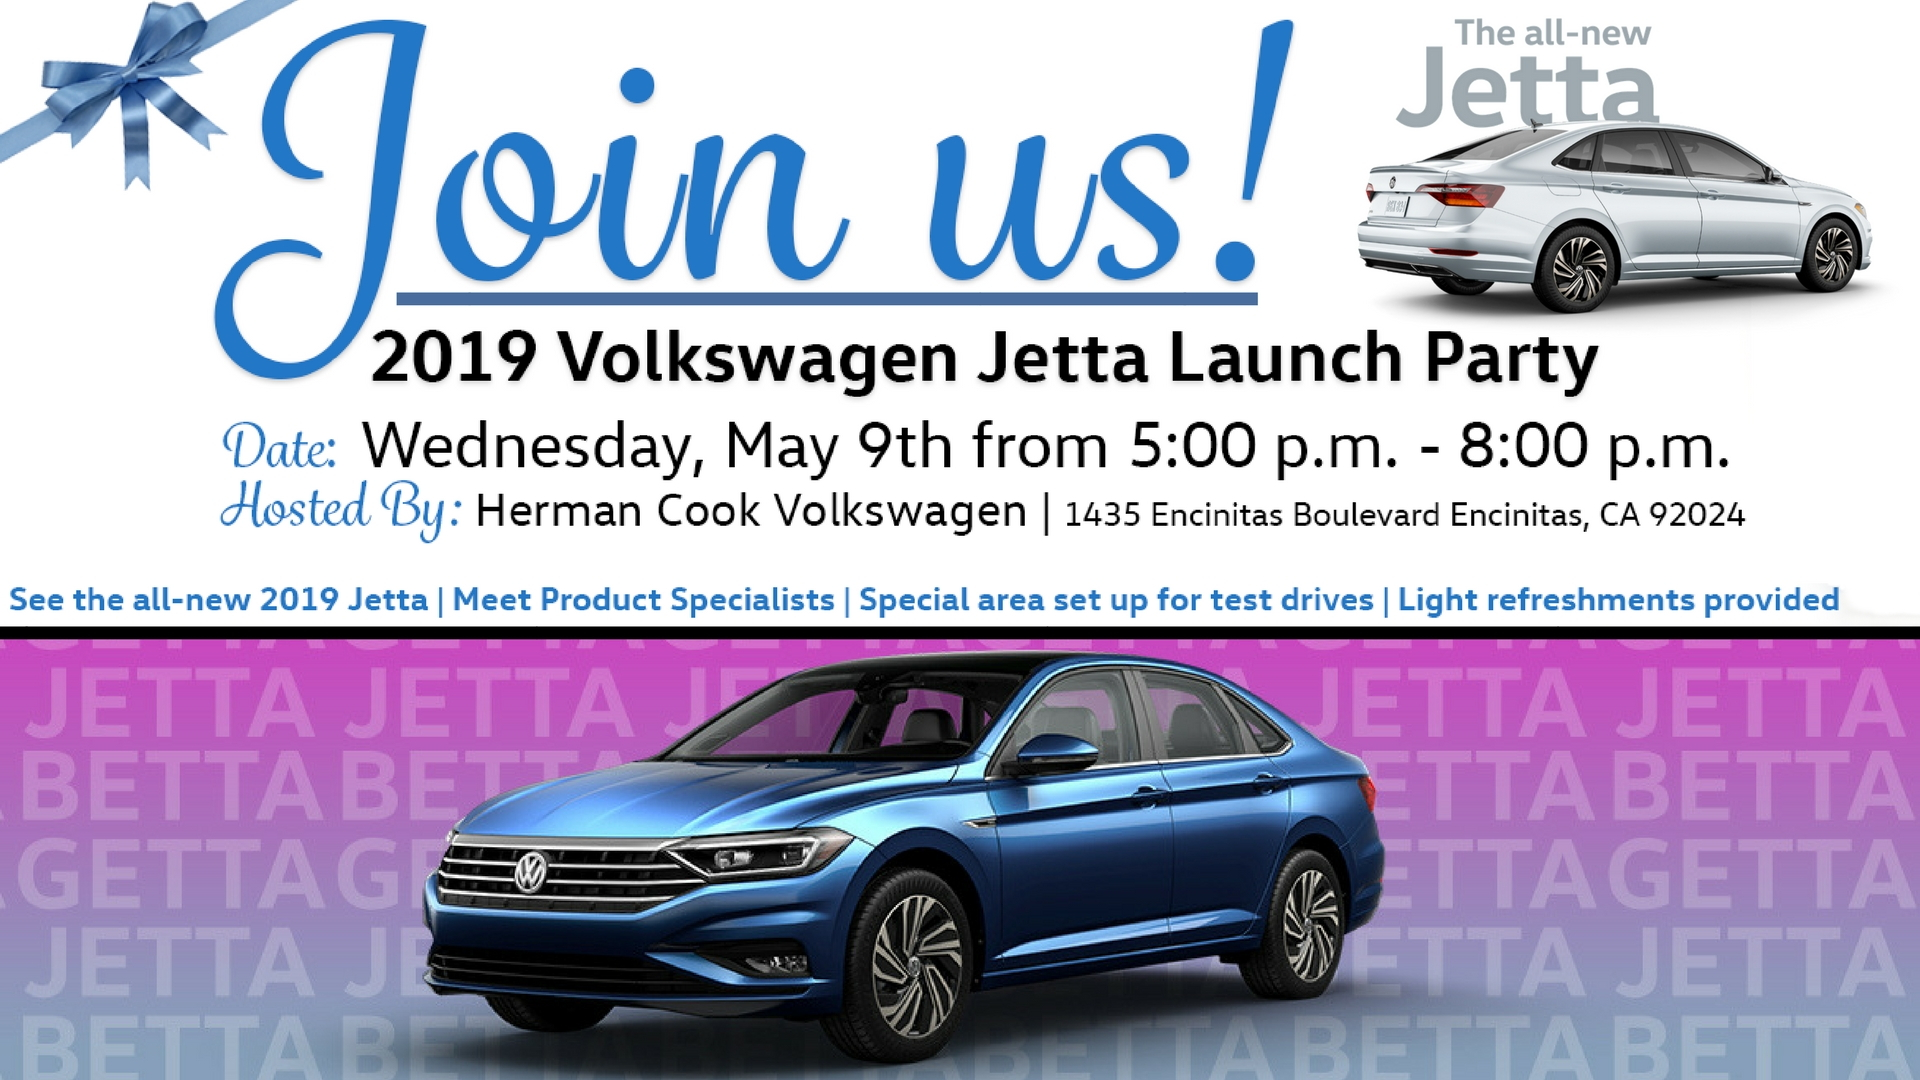 You're Invited! 2019 Volkswagen Jetta Launch and Pizza Party